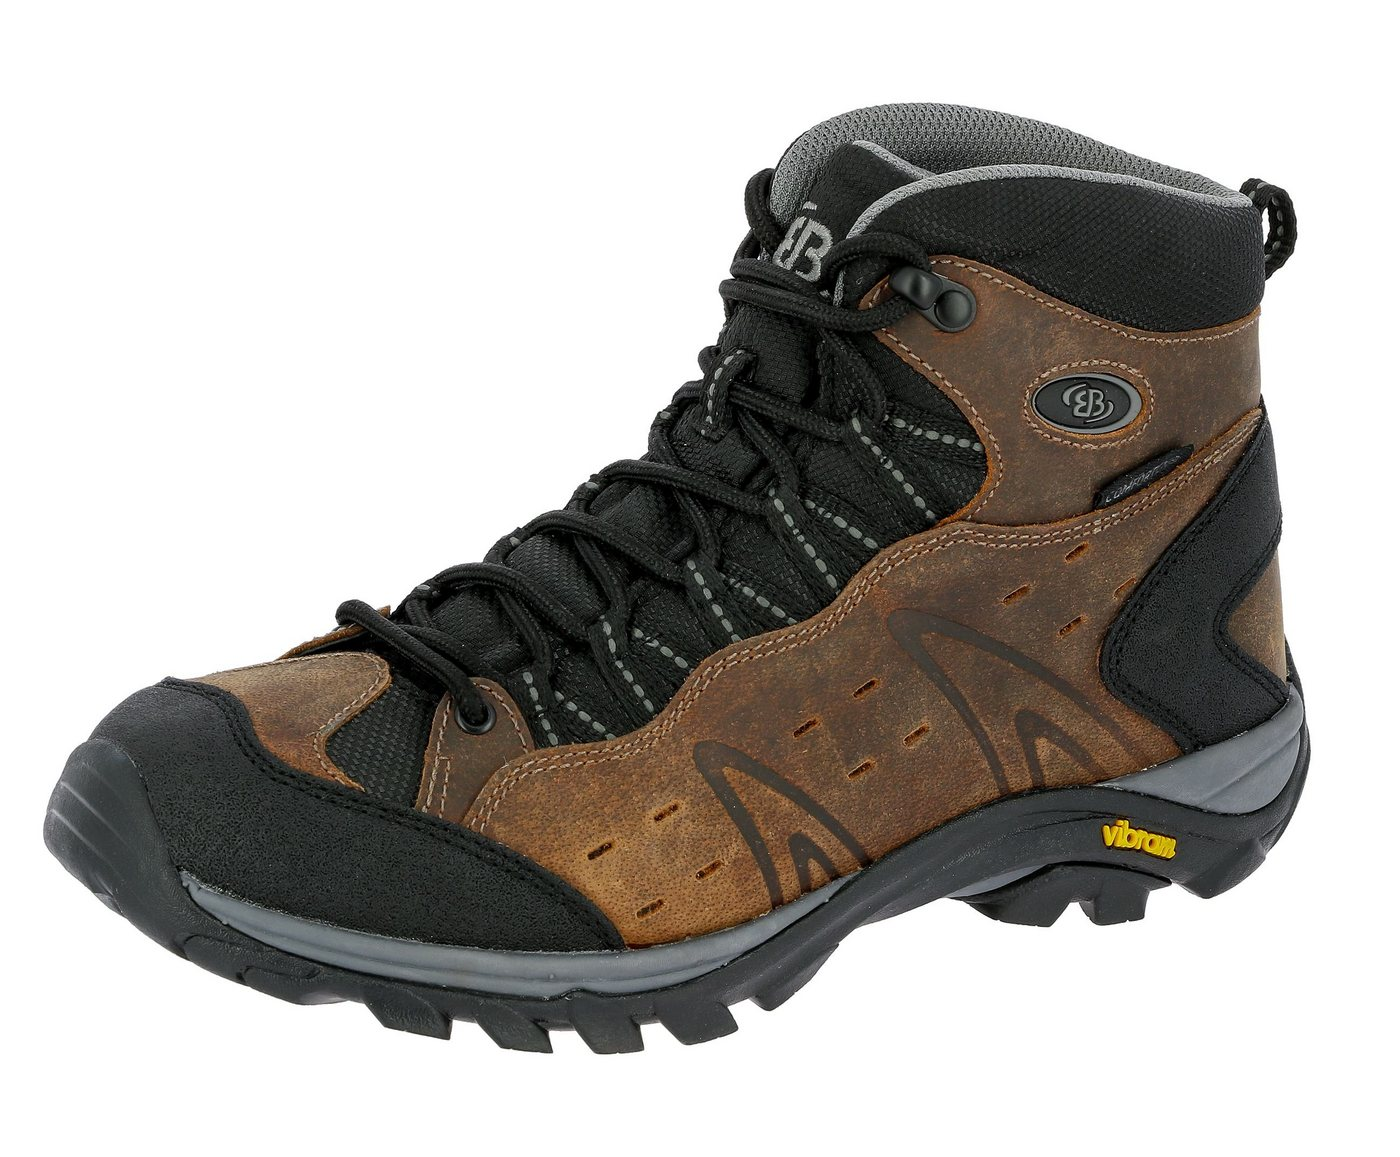 BRÜTTING »Outdoorschuh Mount Hona High Classic« Wanderschuh von BRÜTTING